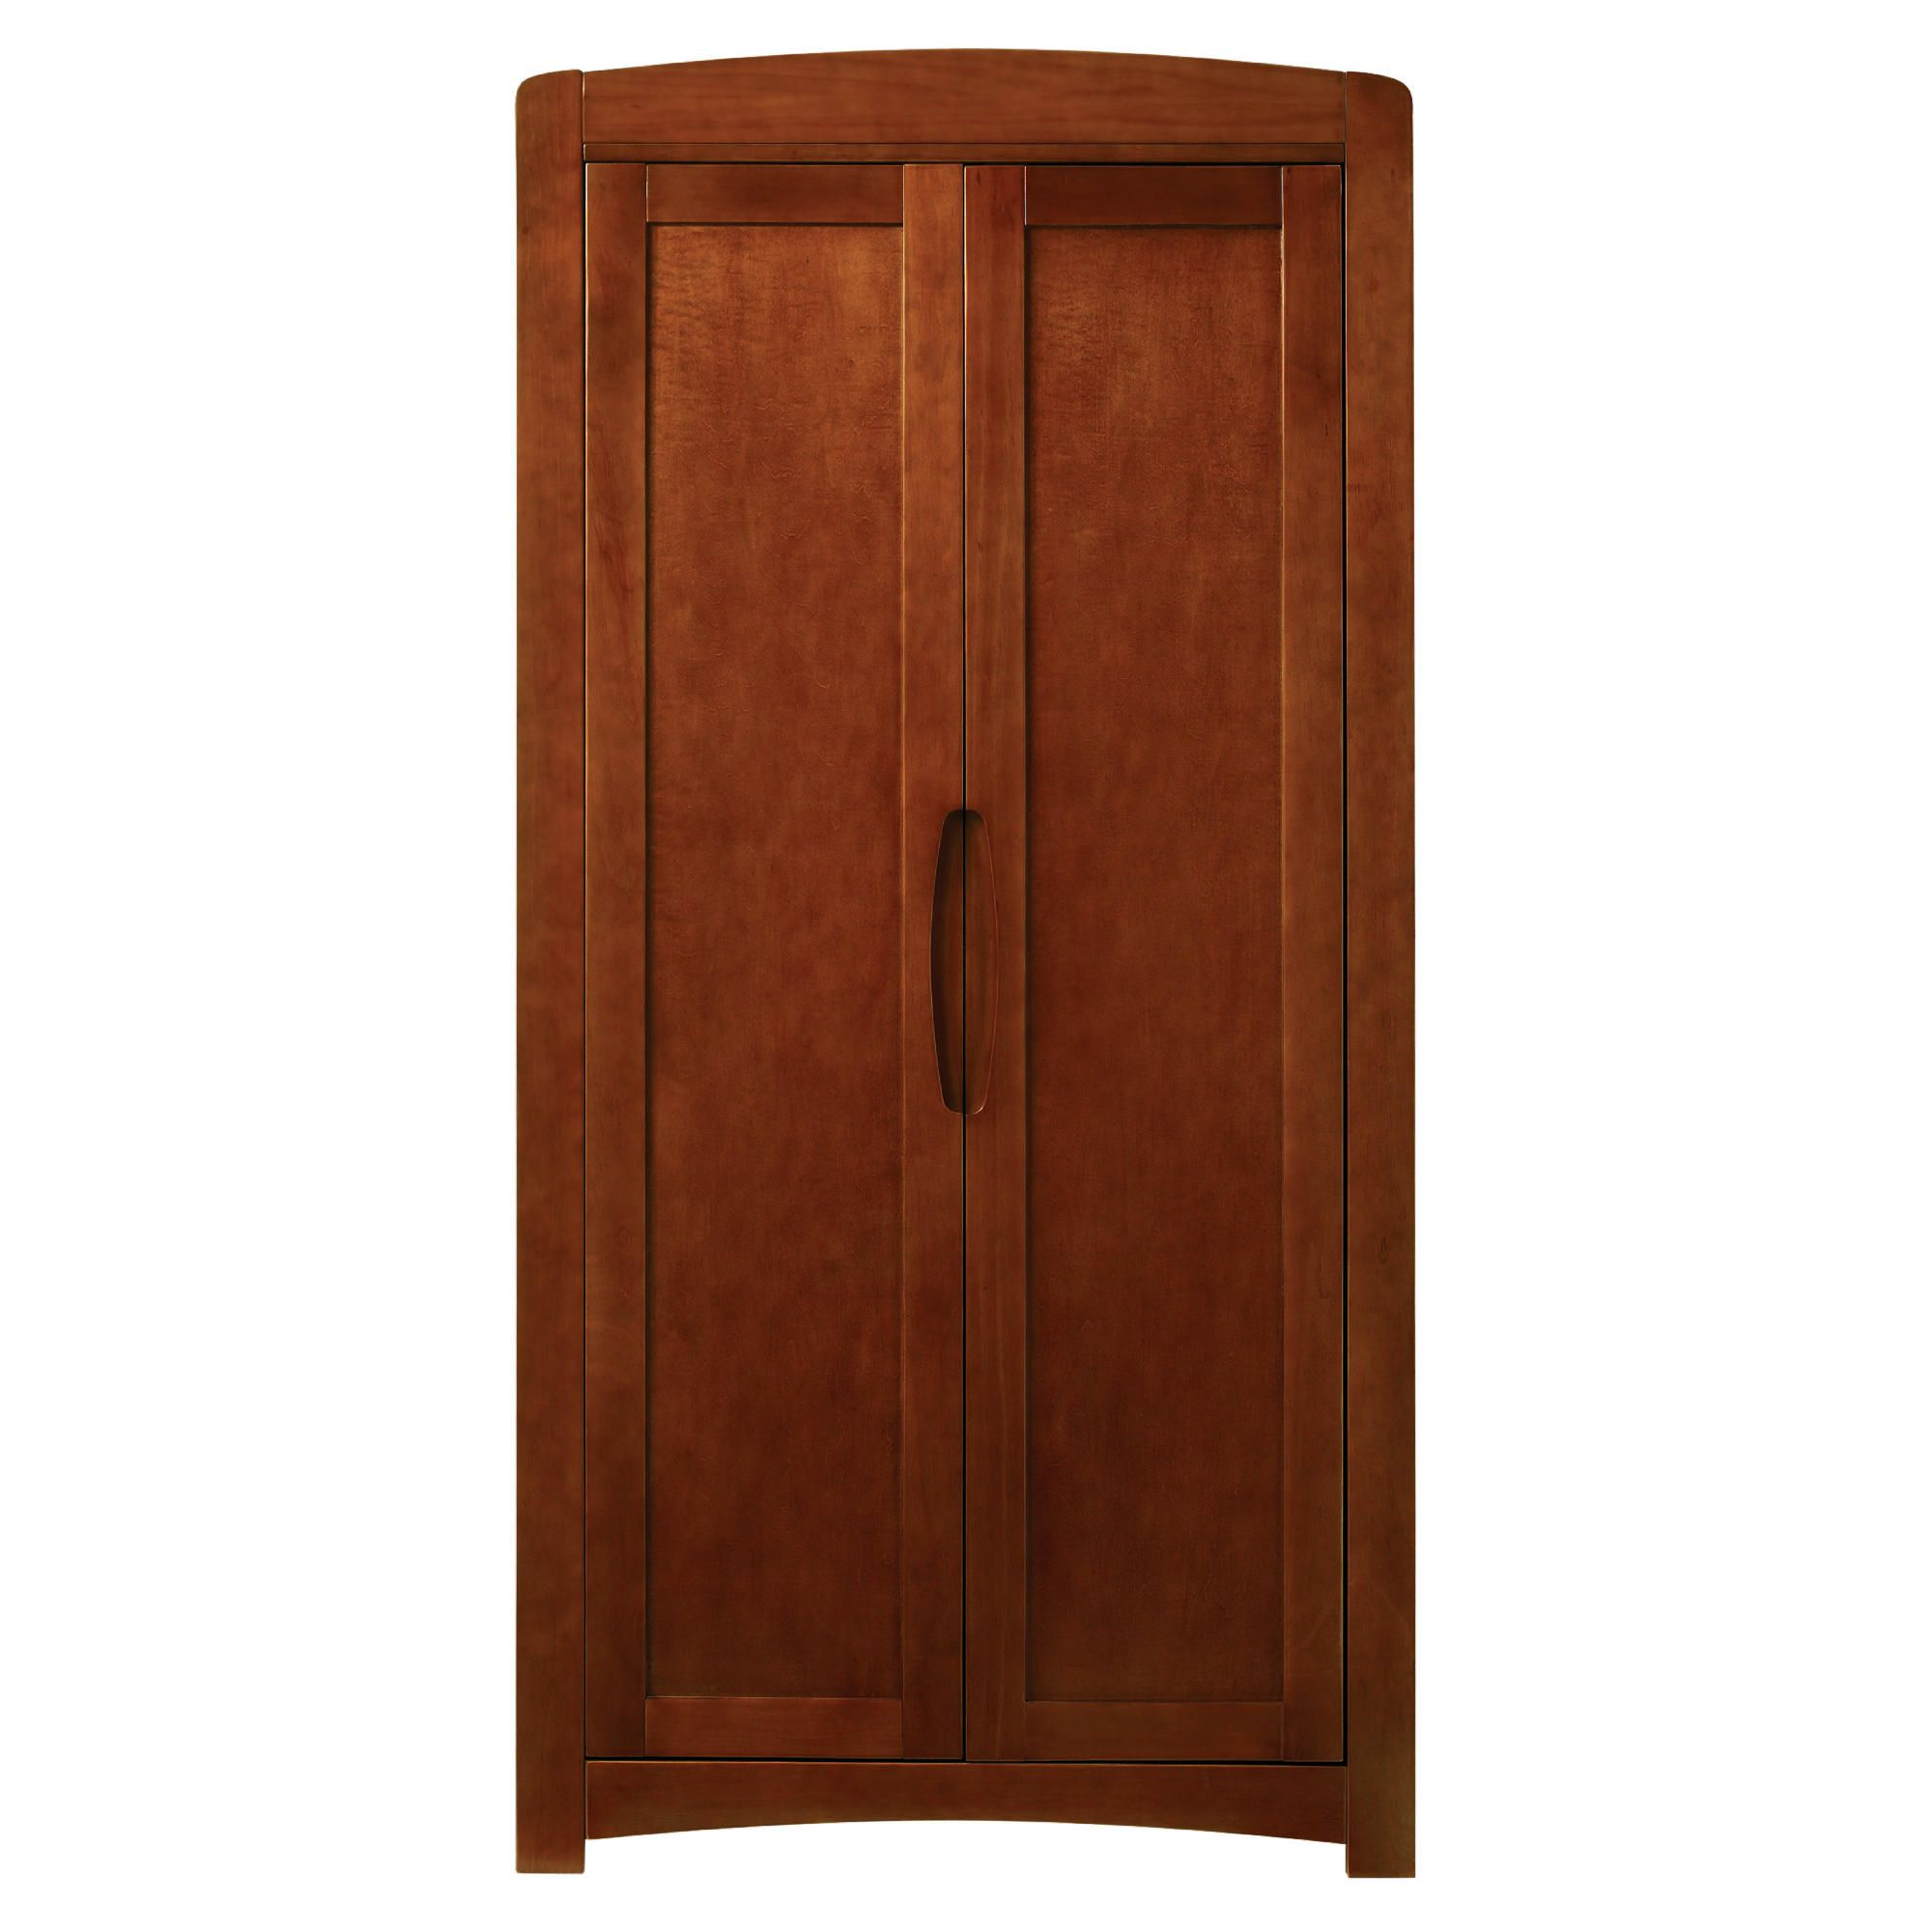 Cosatto Arlo Wardrobe, Dark Walnut at Tesco Direct